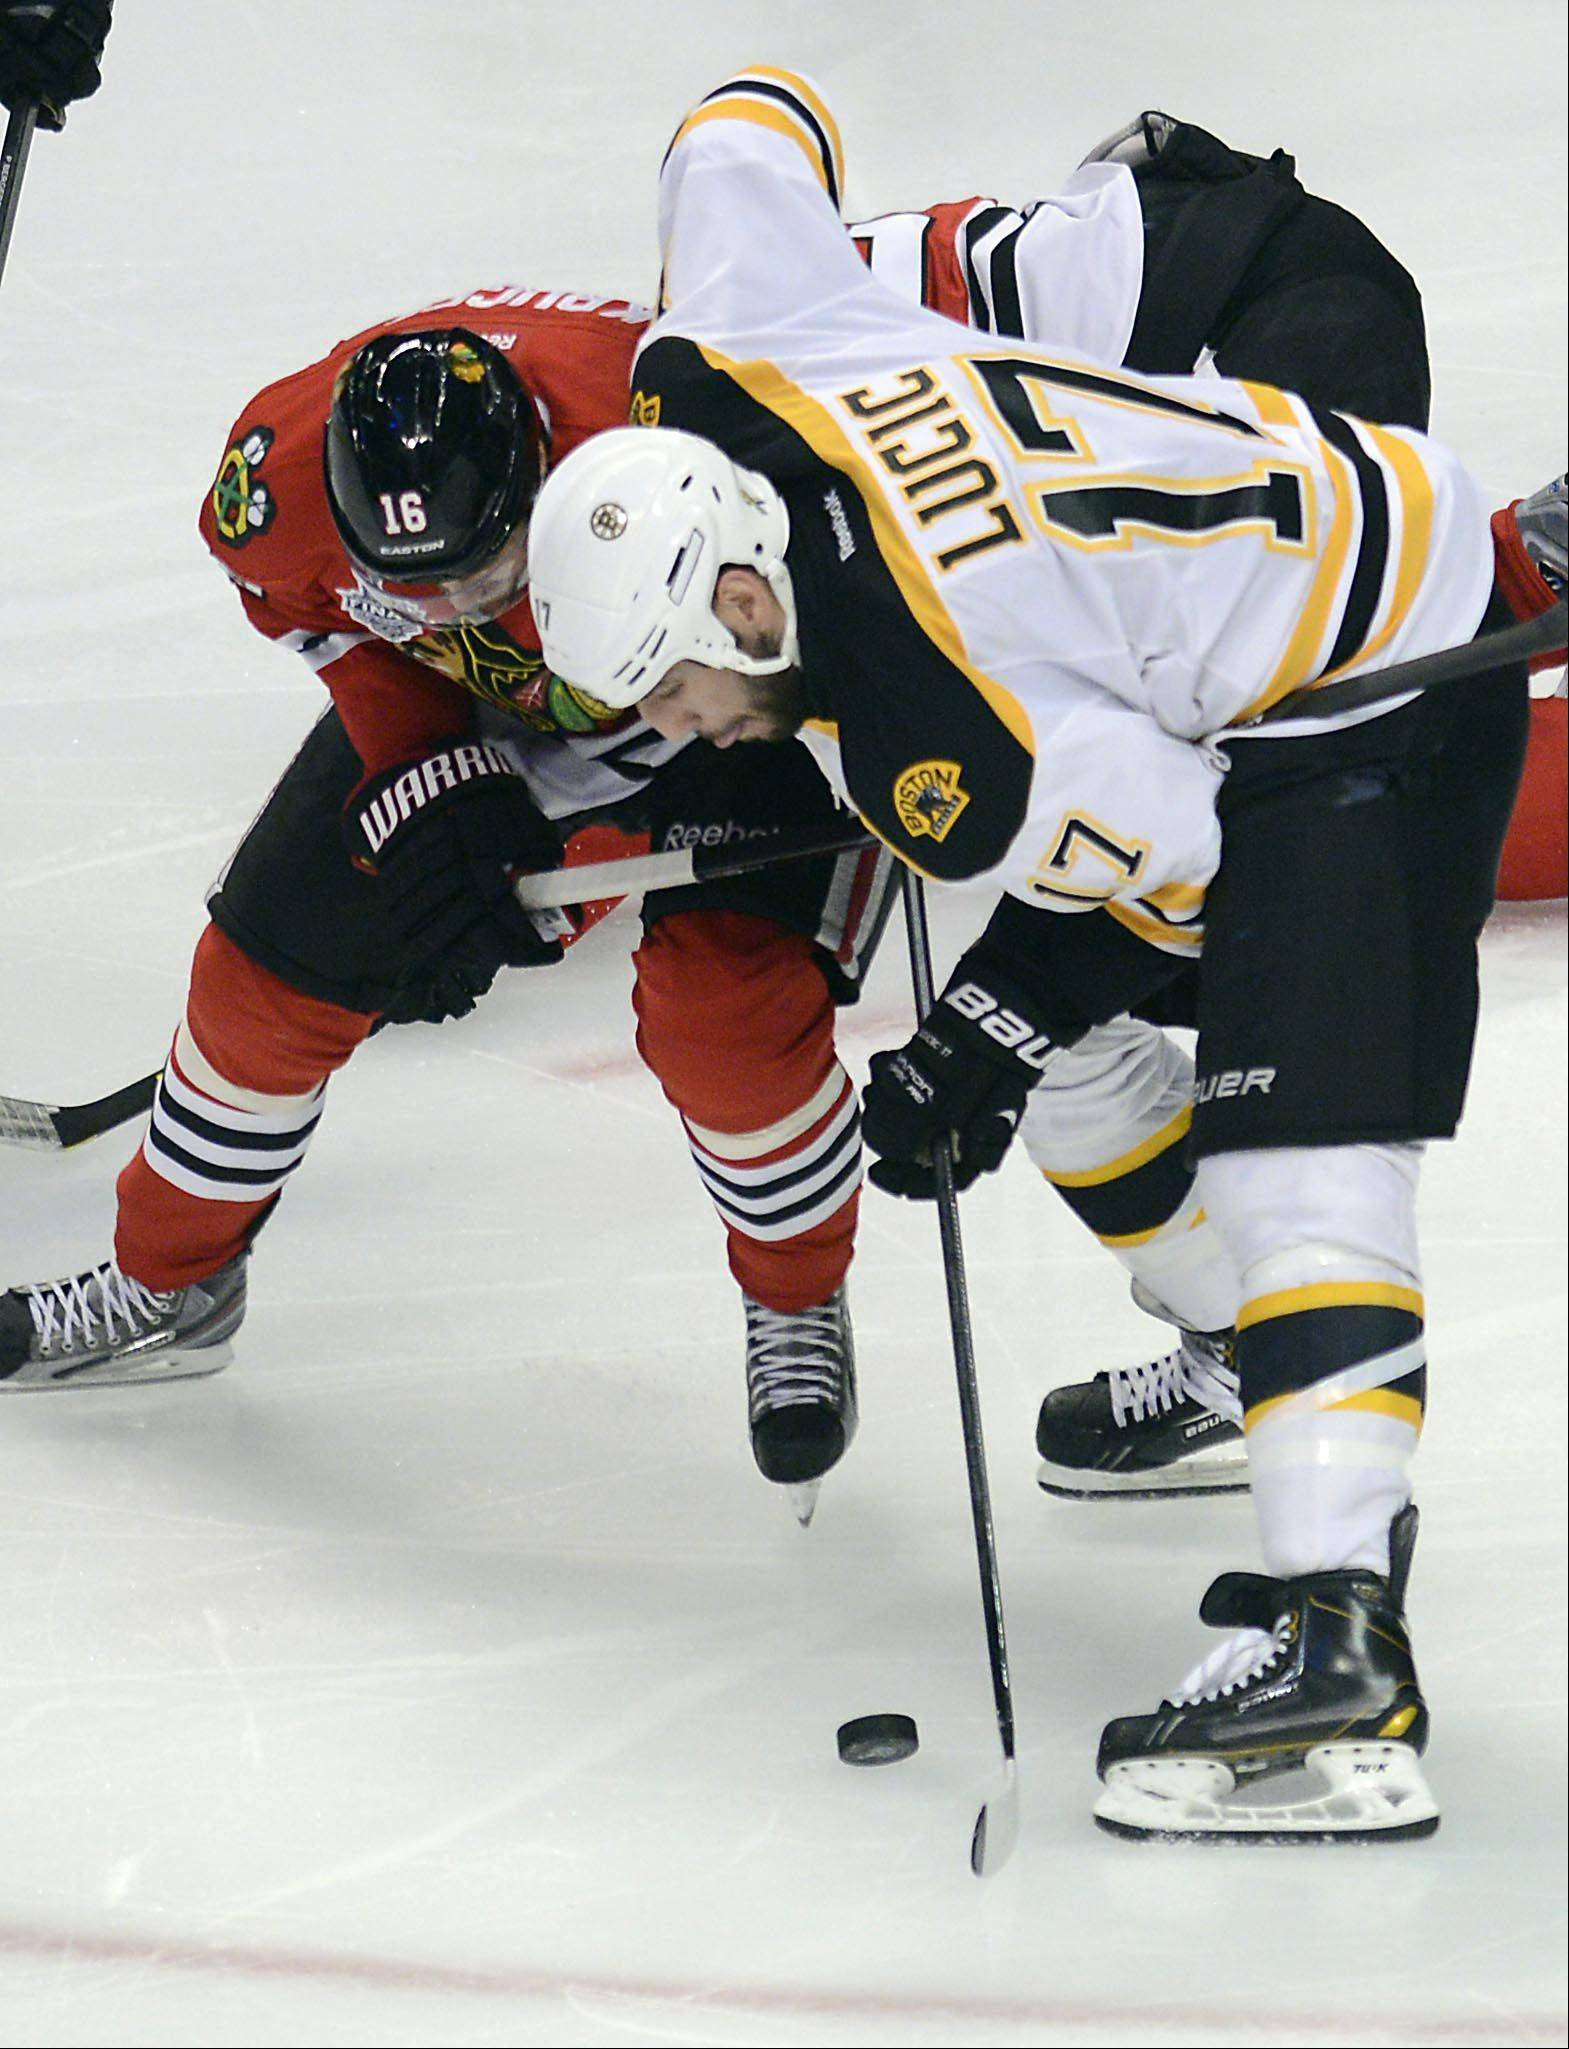 John Starks/jstarks@dailyherald.comBoston Bruins left wing Milan Lucic andChicago Blackhawks center Marcus Kruger battle for the puck in the third period during Game 1 of the Stanley Cup Finals Wednesday at the Untied Center in Chicago.